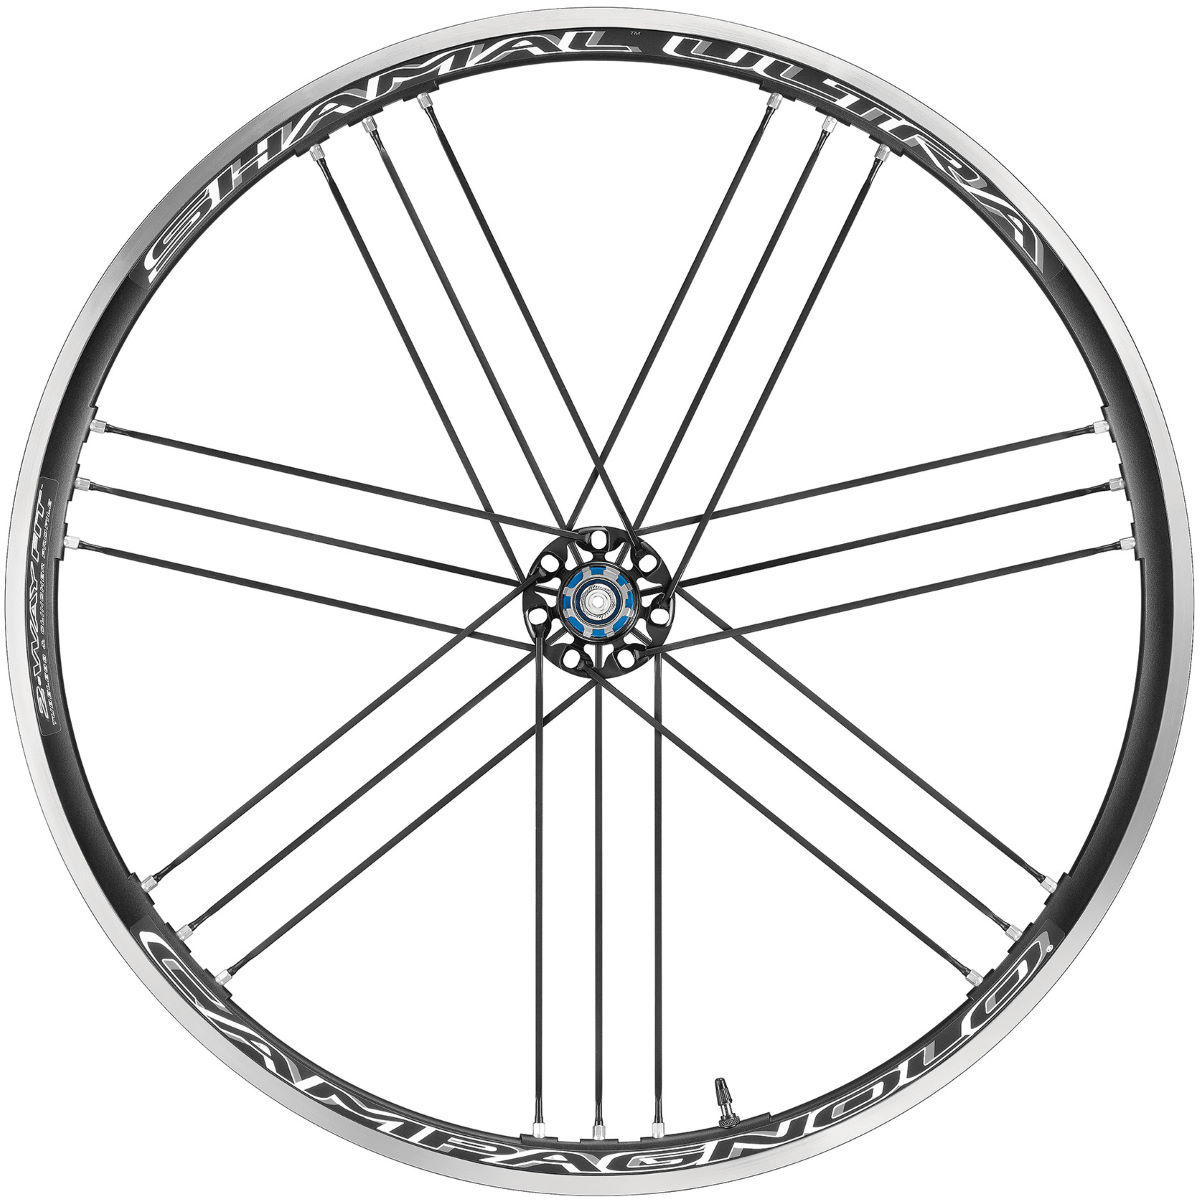 Campagnolo Shamal Ultra C17 2-Way Fit Rear Wheel - Ruedas traseras